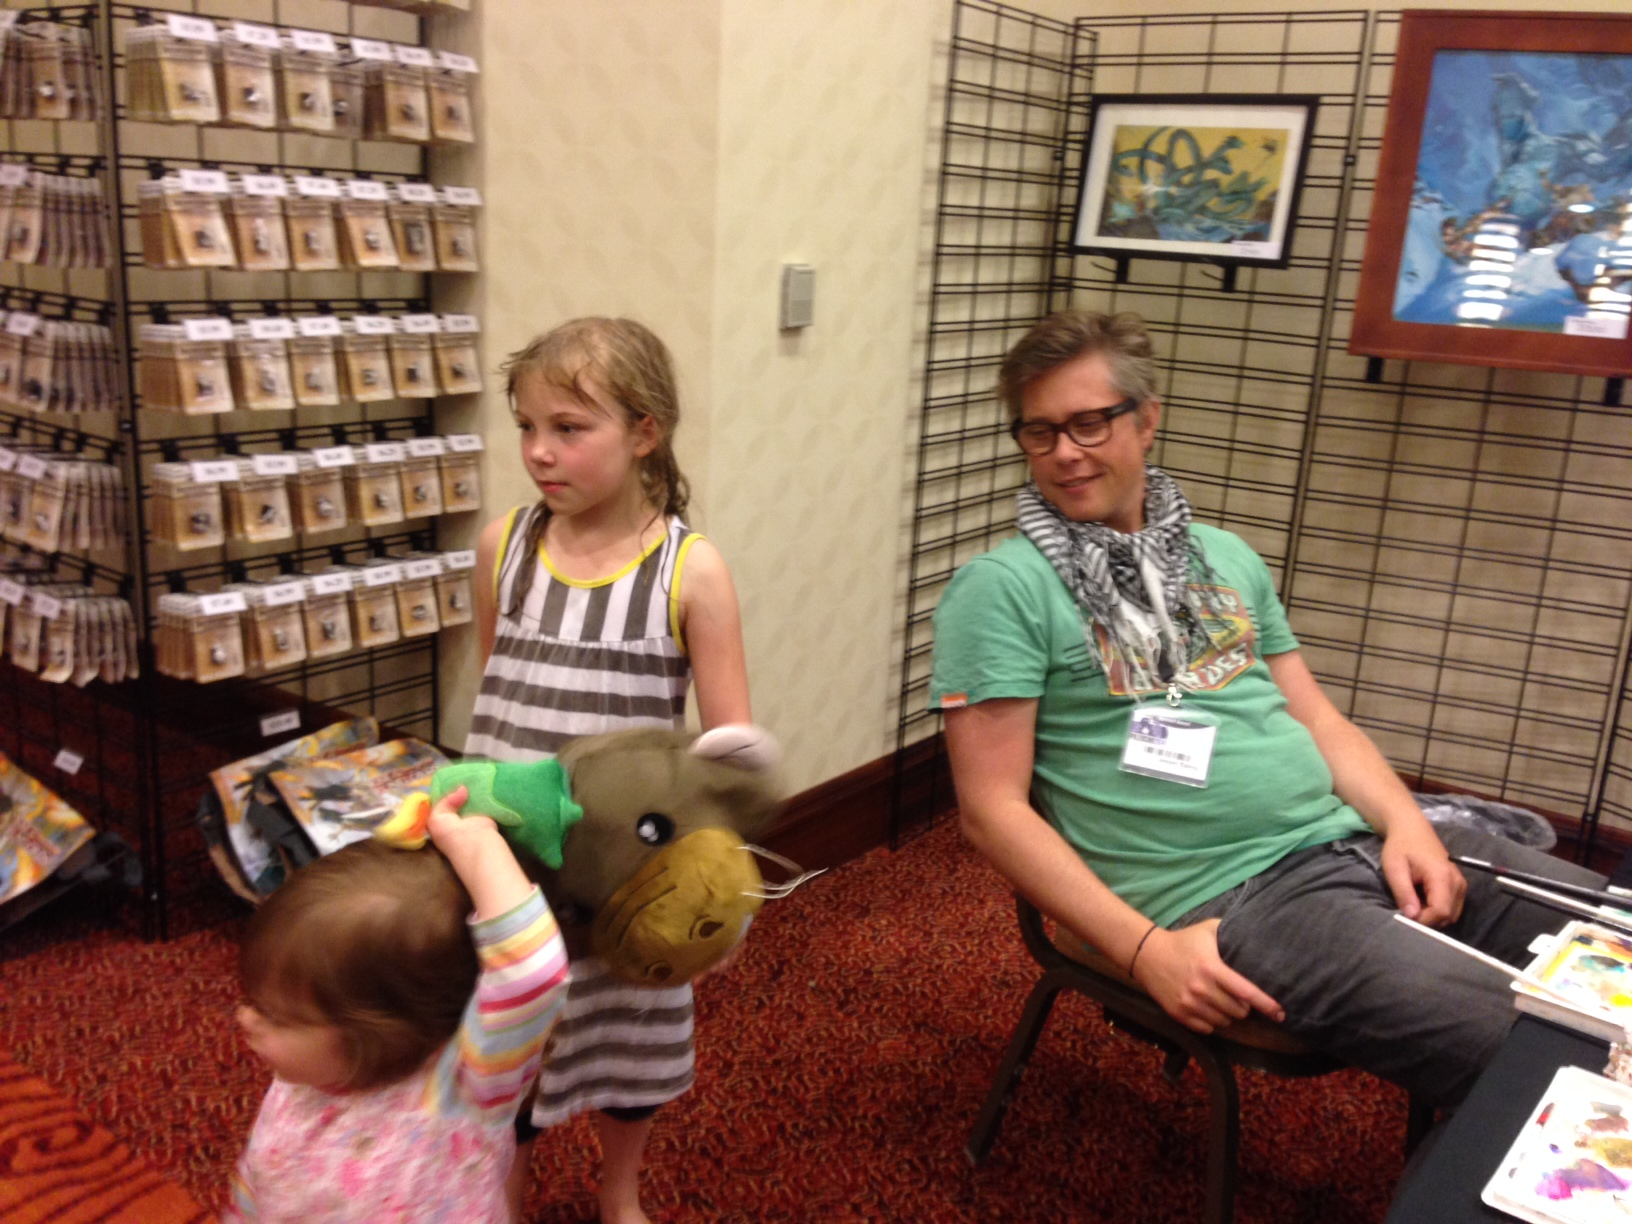 PaizoCon 2014 - More young gamers